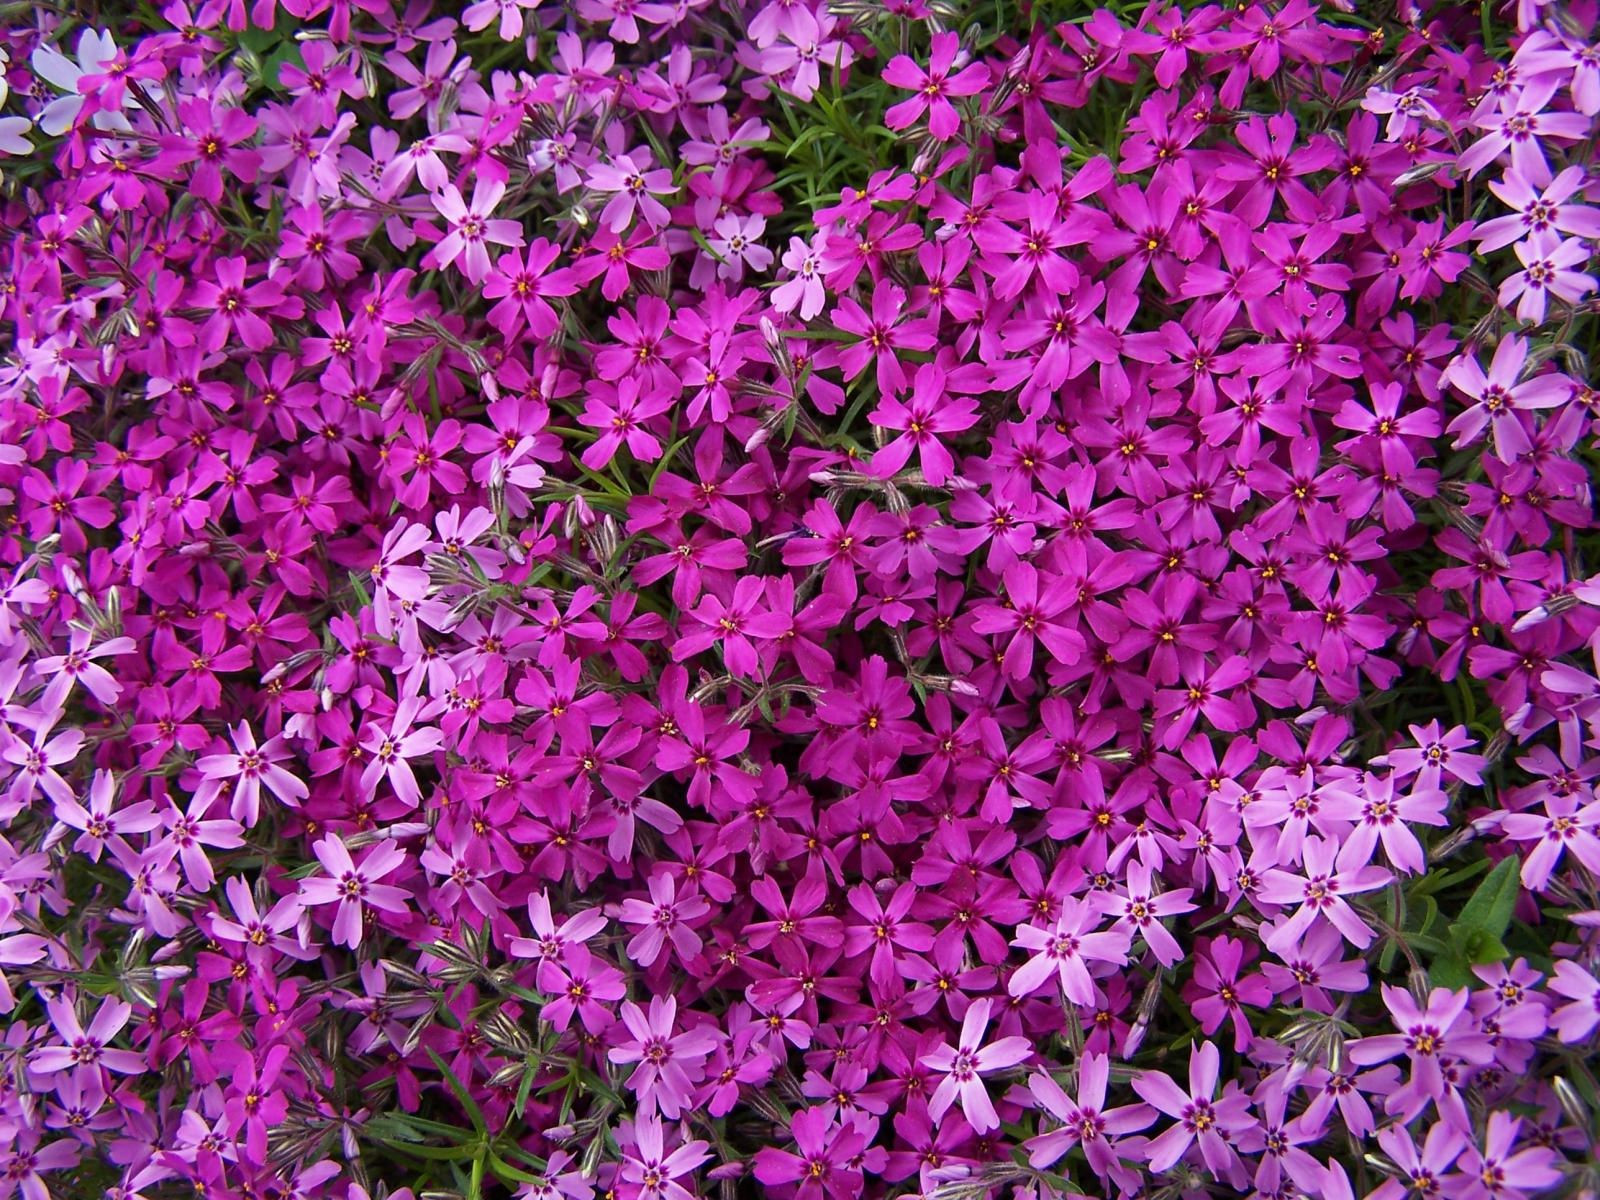 Creeping Phlox Flowers Make sure to visit GardenAnswers and our free plant idenfication app